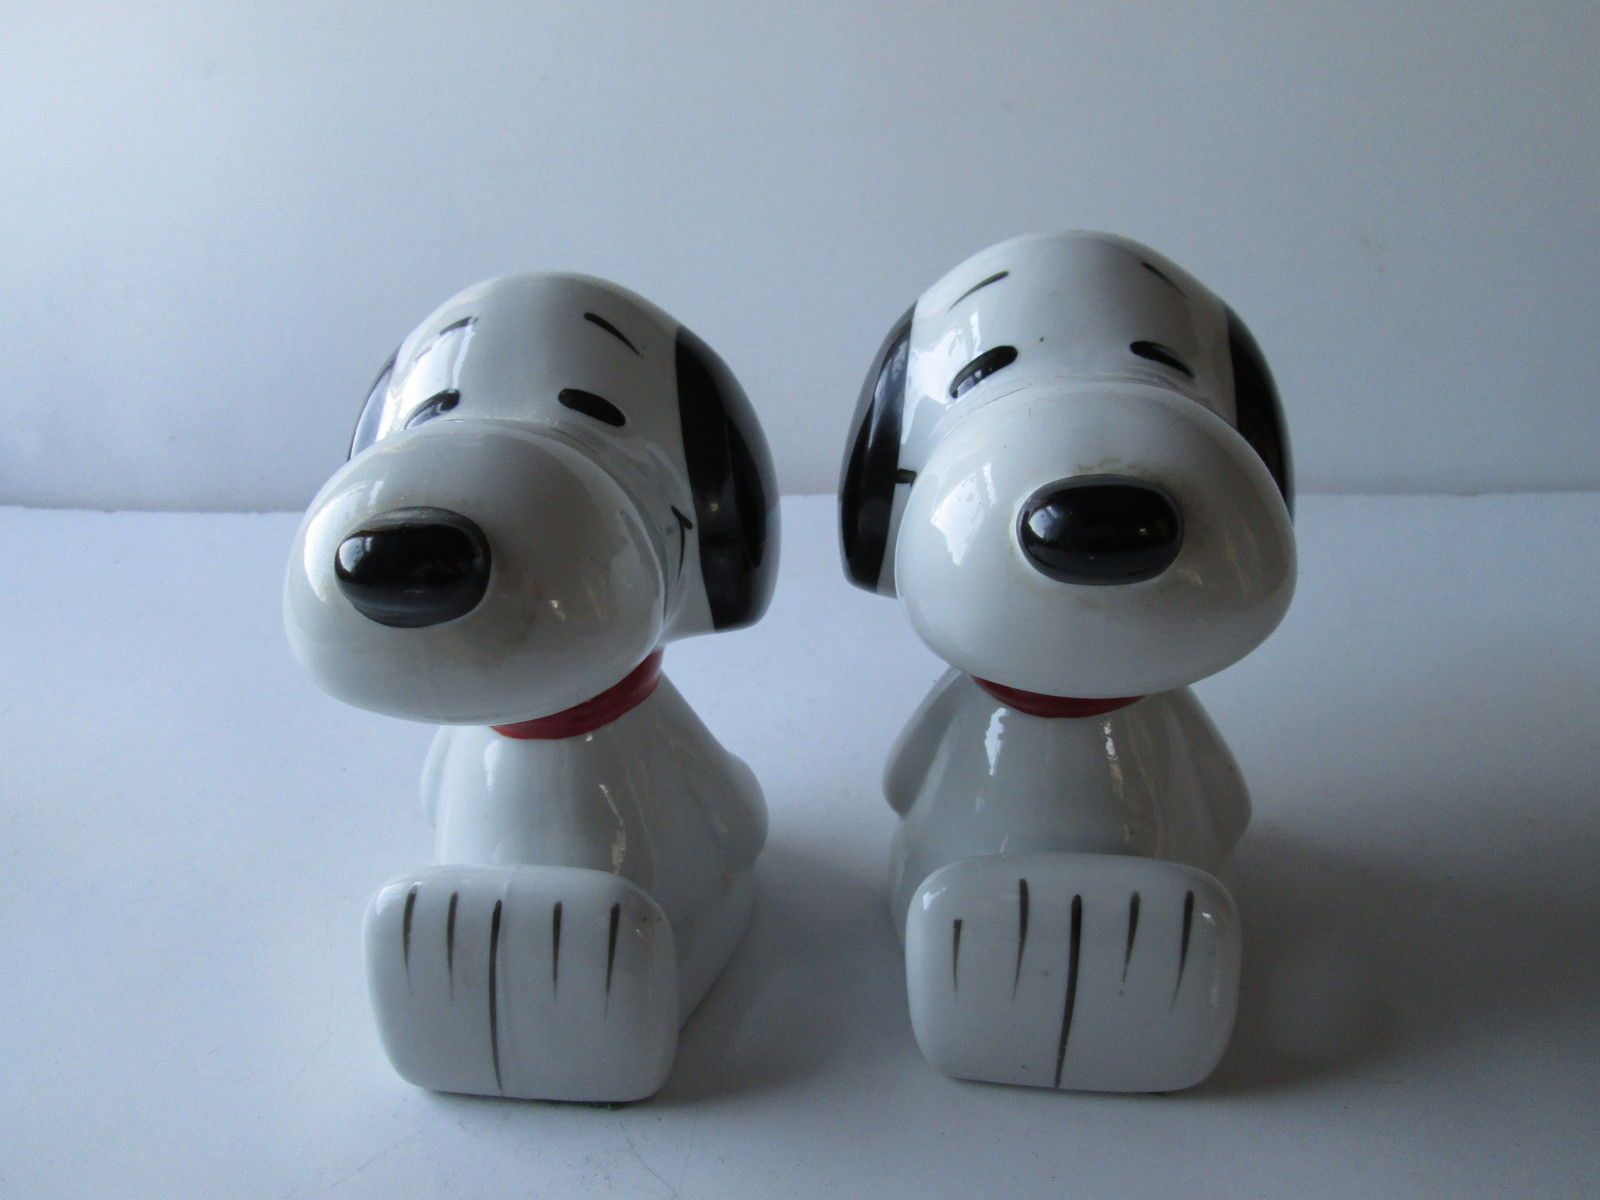 Snoopy Set of Ceramic Bookends